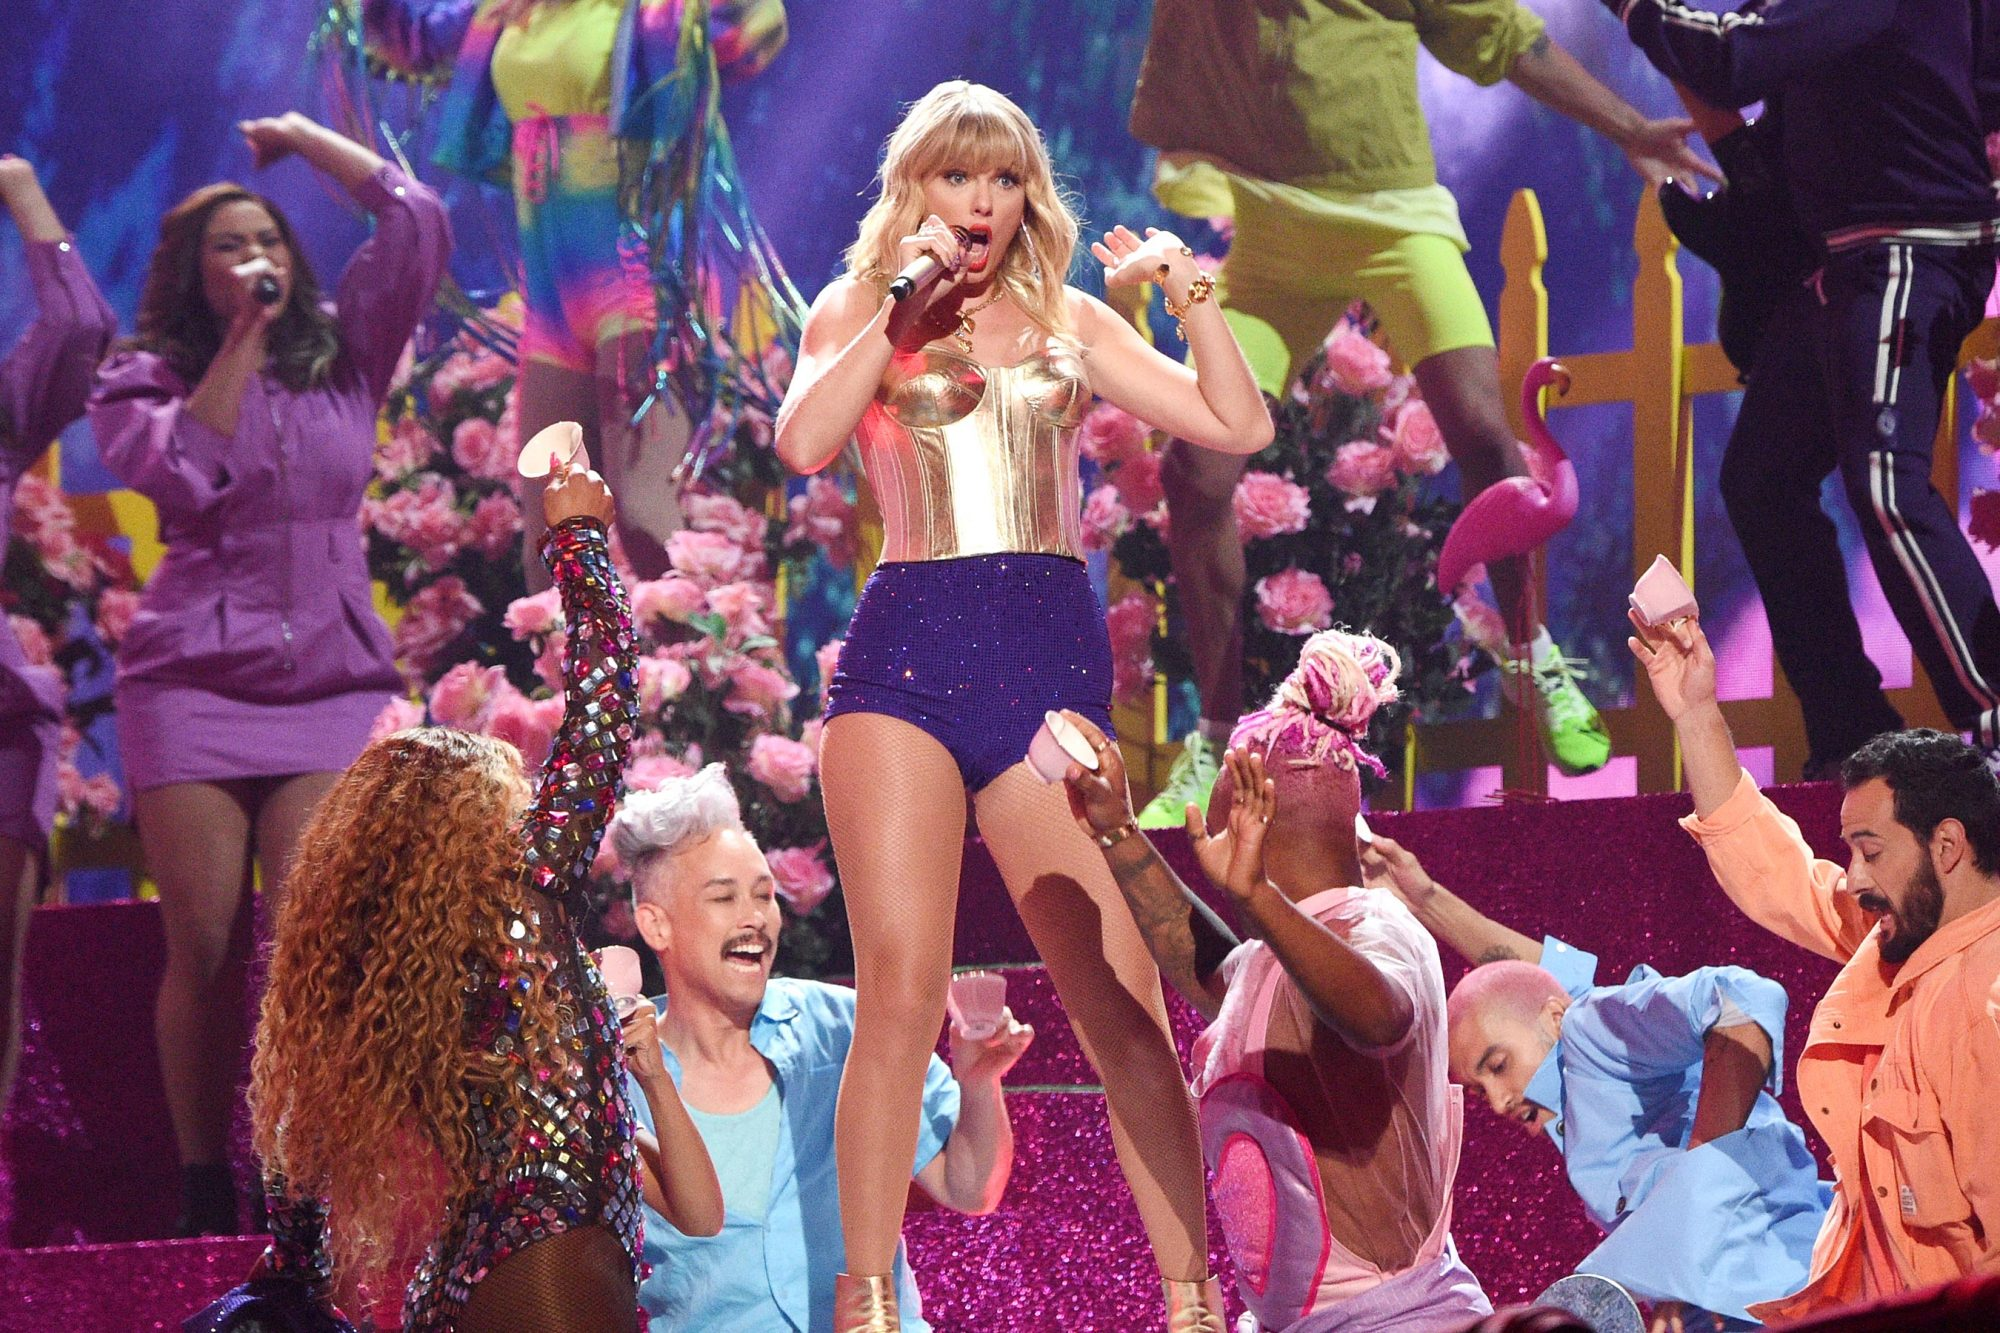 NEWARK, NEW JERSEY - AUGUST 26: Taylor Swift performs onstage during the 2019 MTV Video Music Awards at Prudential Center on August 26, 2019 in Newark, New Jersey. (Photo by Kevin Mazur/WireImage)